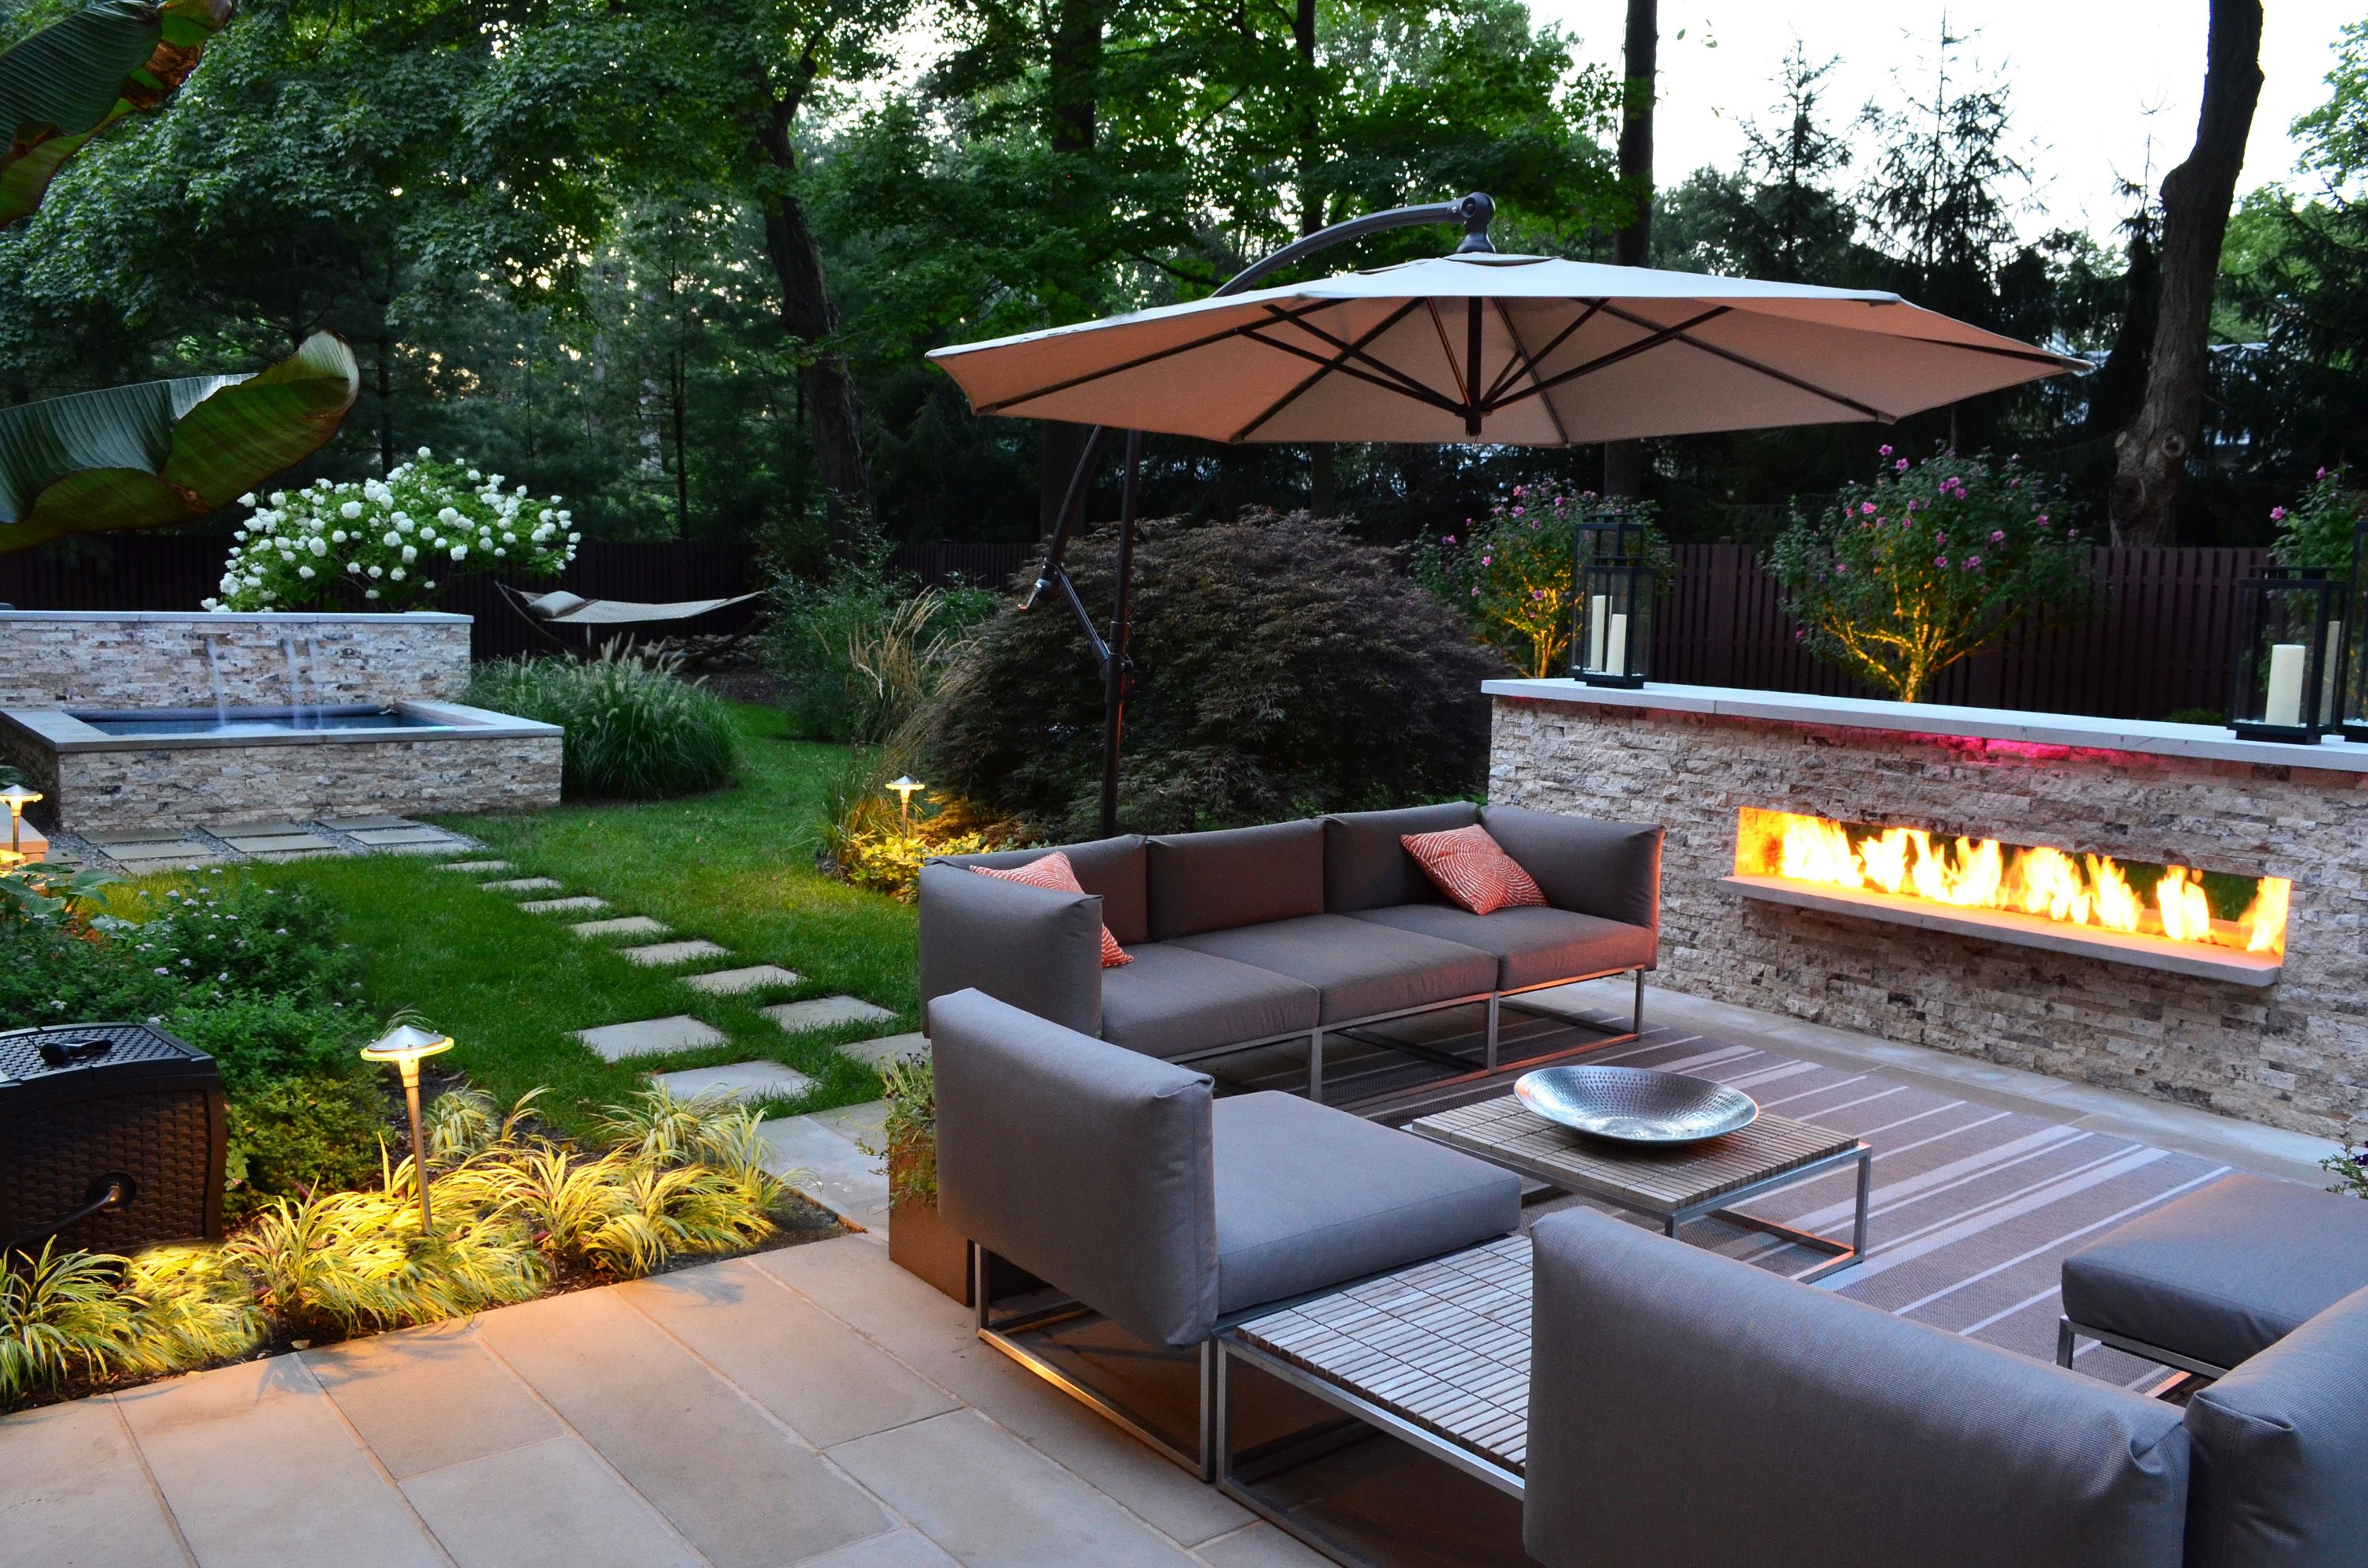 Ethanol Feuerstelle Outdoor Panday Group Luxury Interior Design My Great Outdoors Pinterest